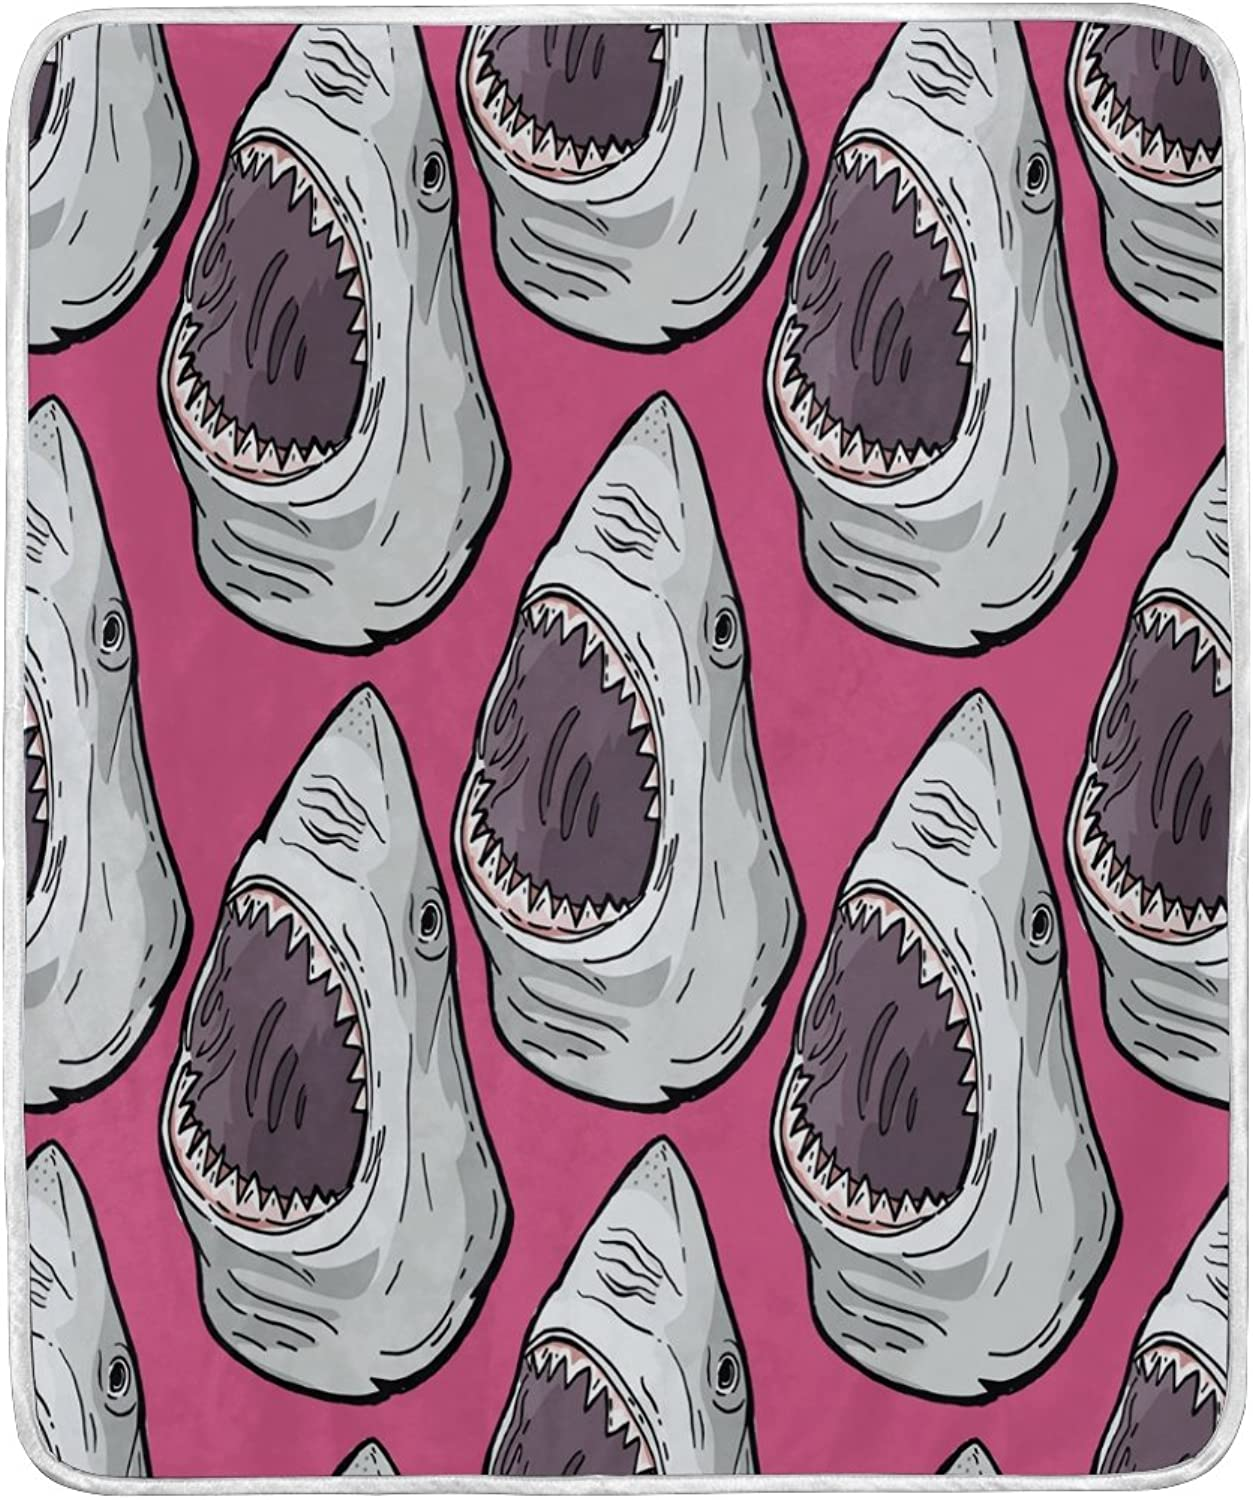 ALAZA Home Decor Cartoon Angry Shark Pink Blanket Soft Warm Blankets for Bed Couch Sofa Lightweight Travelling Camping 60 x 50 inch Throw Size for Kids Boys Women